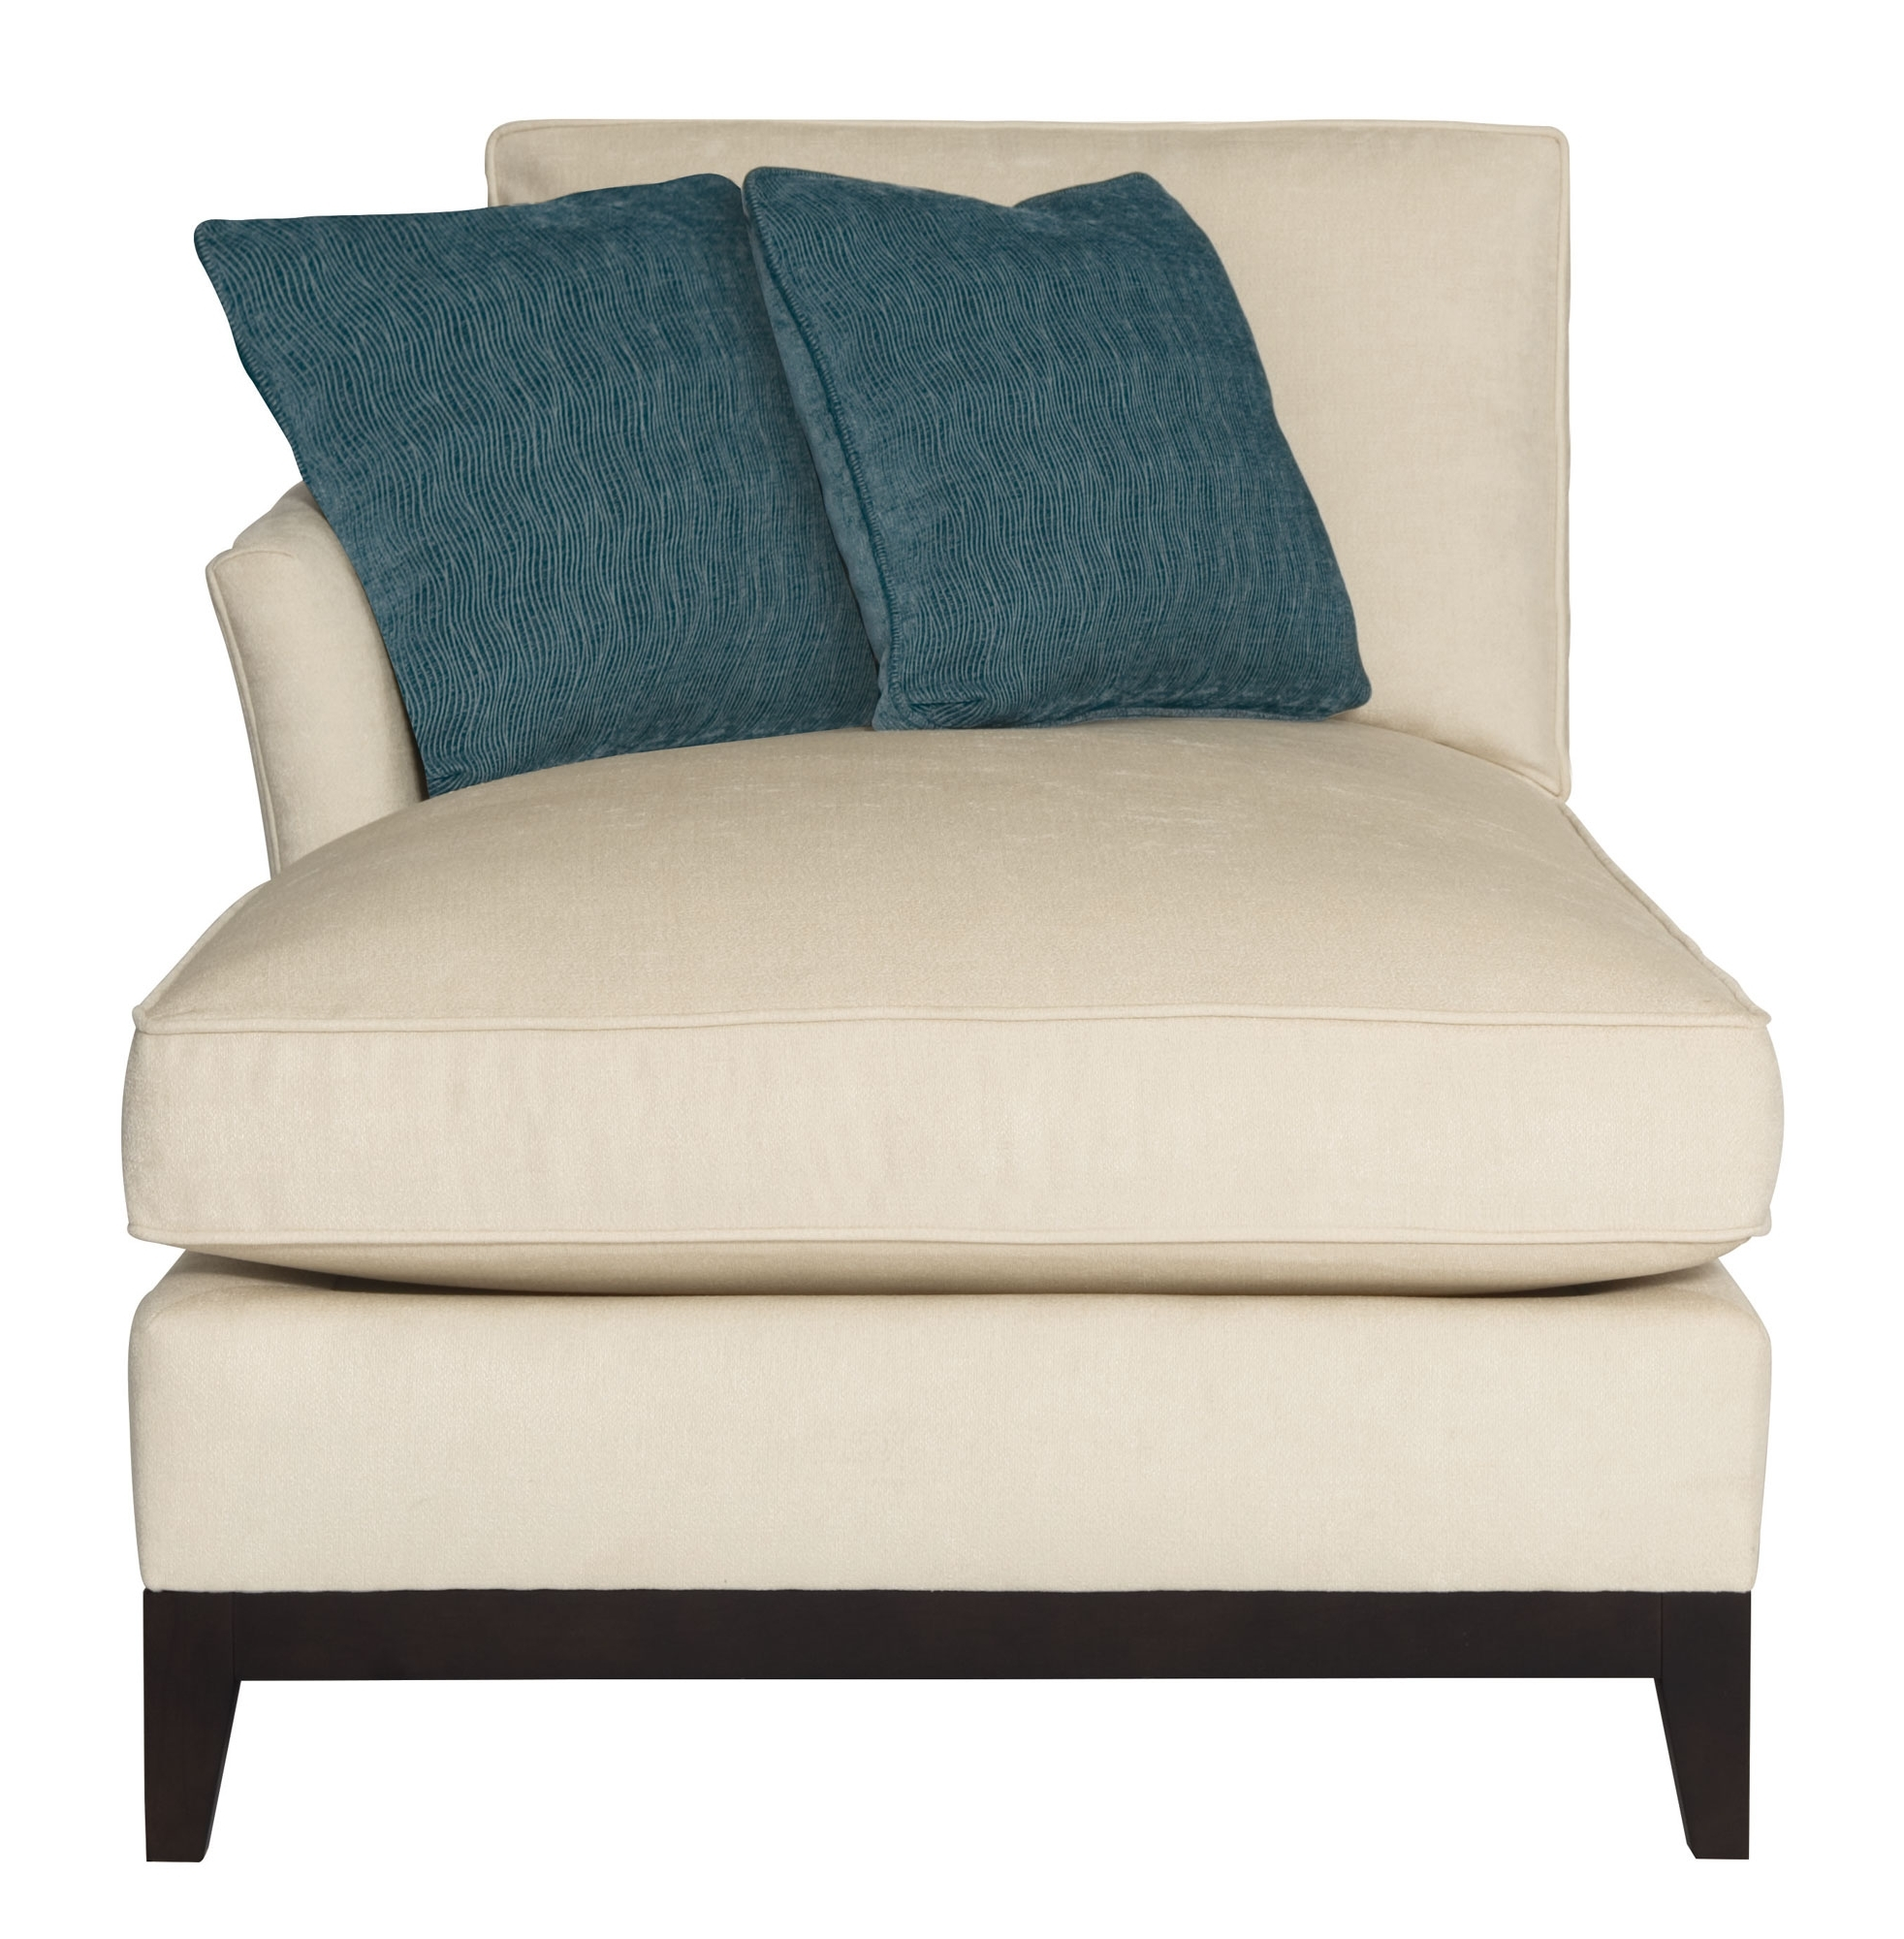 Right Arm Chaises Pertaining To 2018 Right Arm Chaise (View 6 of 15)